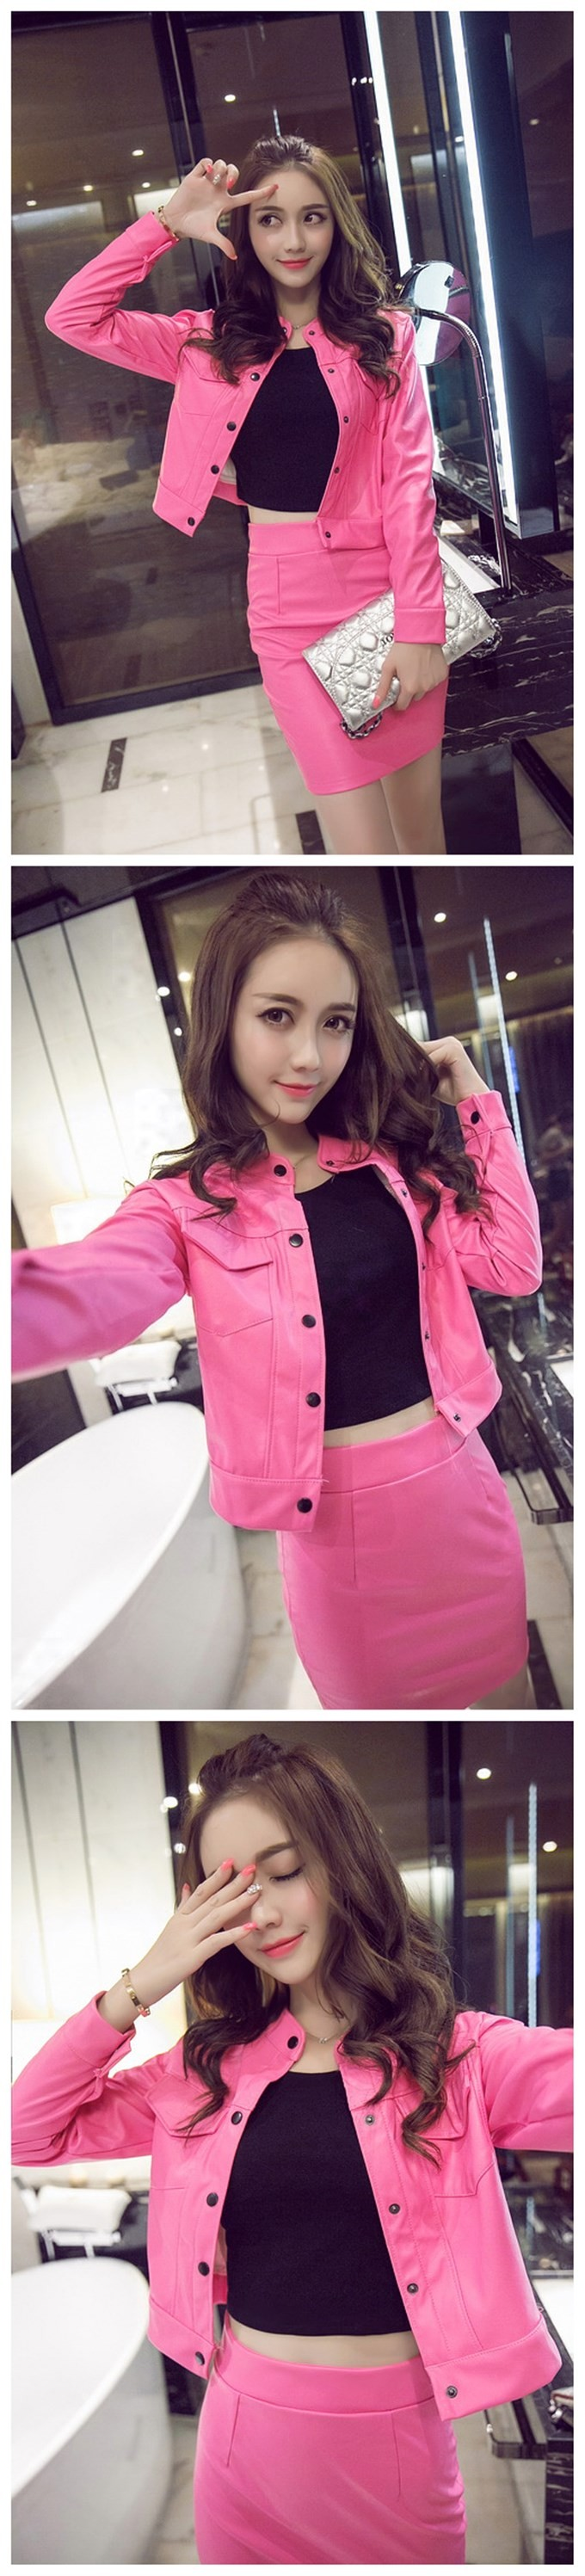 Spring Autumn 2 Piece Set Women Single-breasted PU Leather Short Jacket Top And Skirt Set RM-87